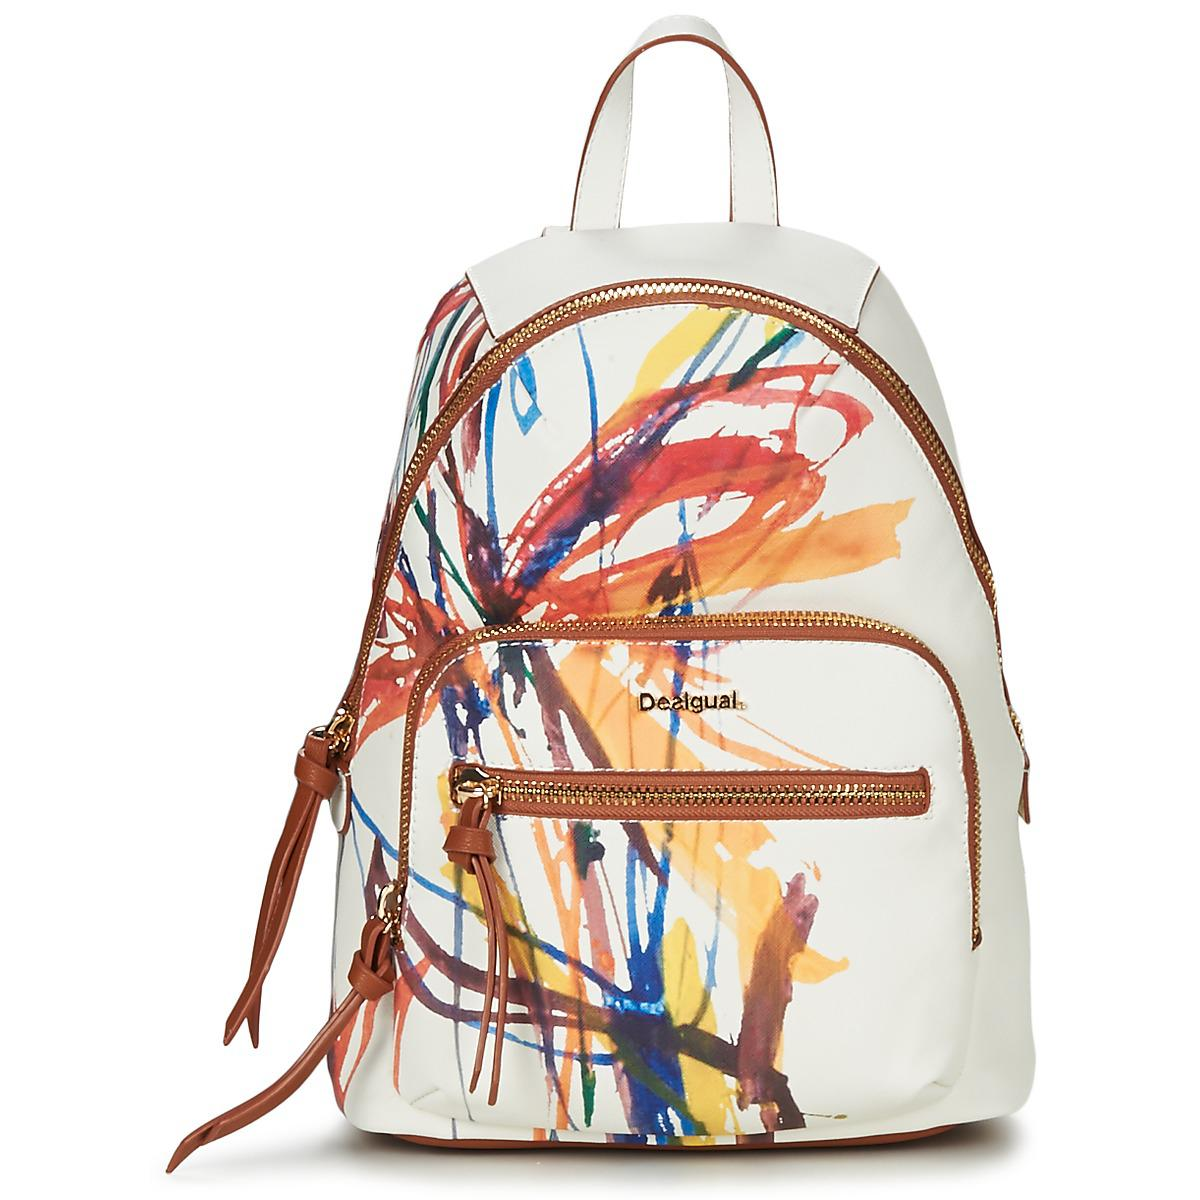 363fbd3f5bc Desigual Acid Ink Lima Women s Backpack In White in White - Lyst